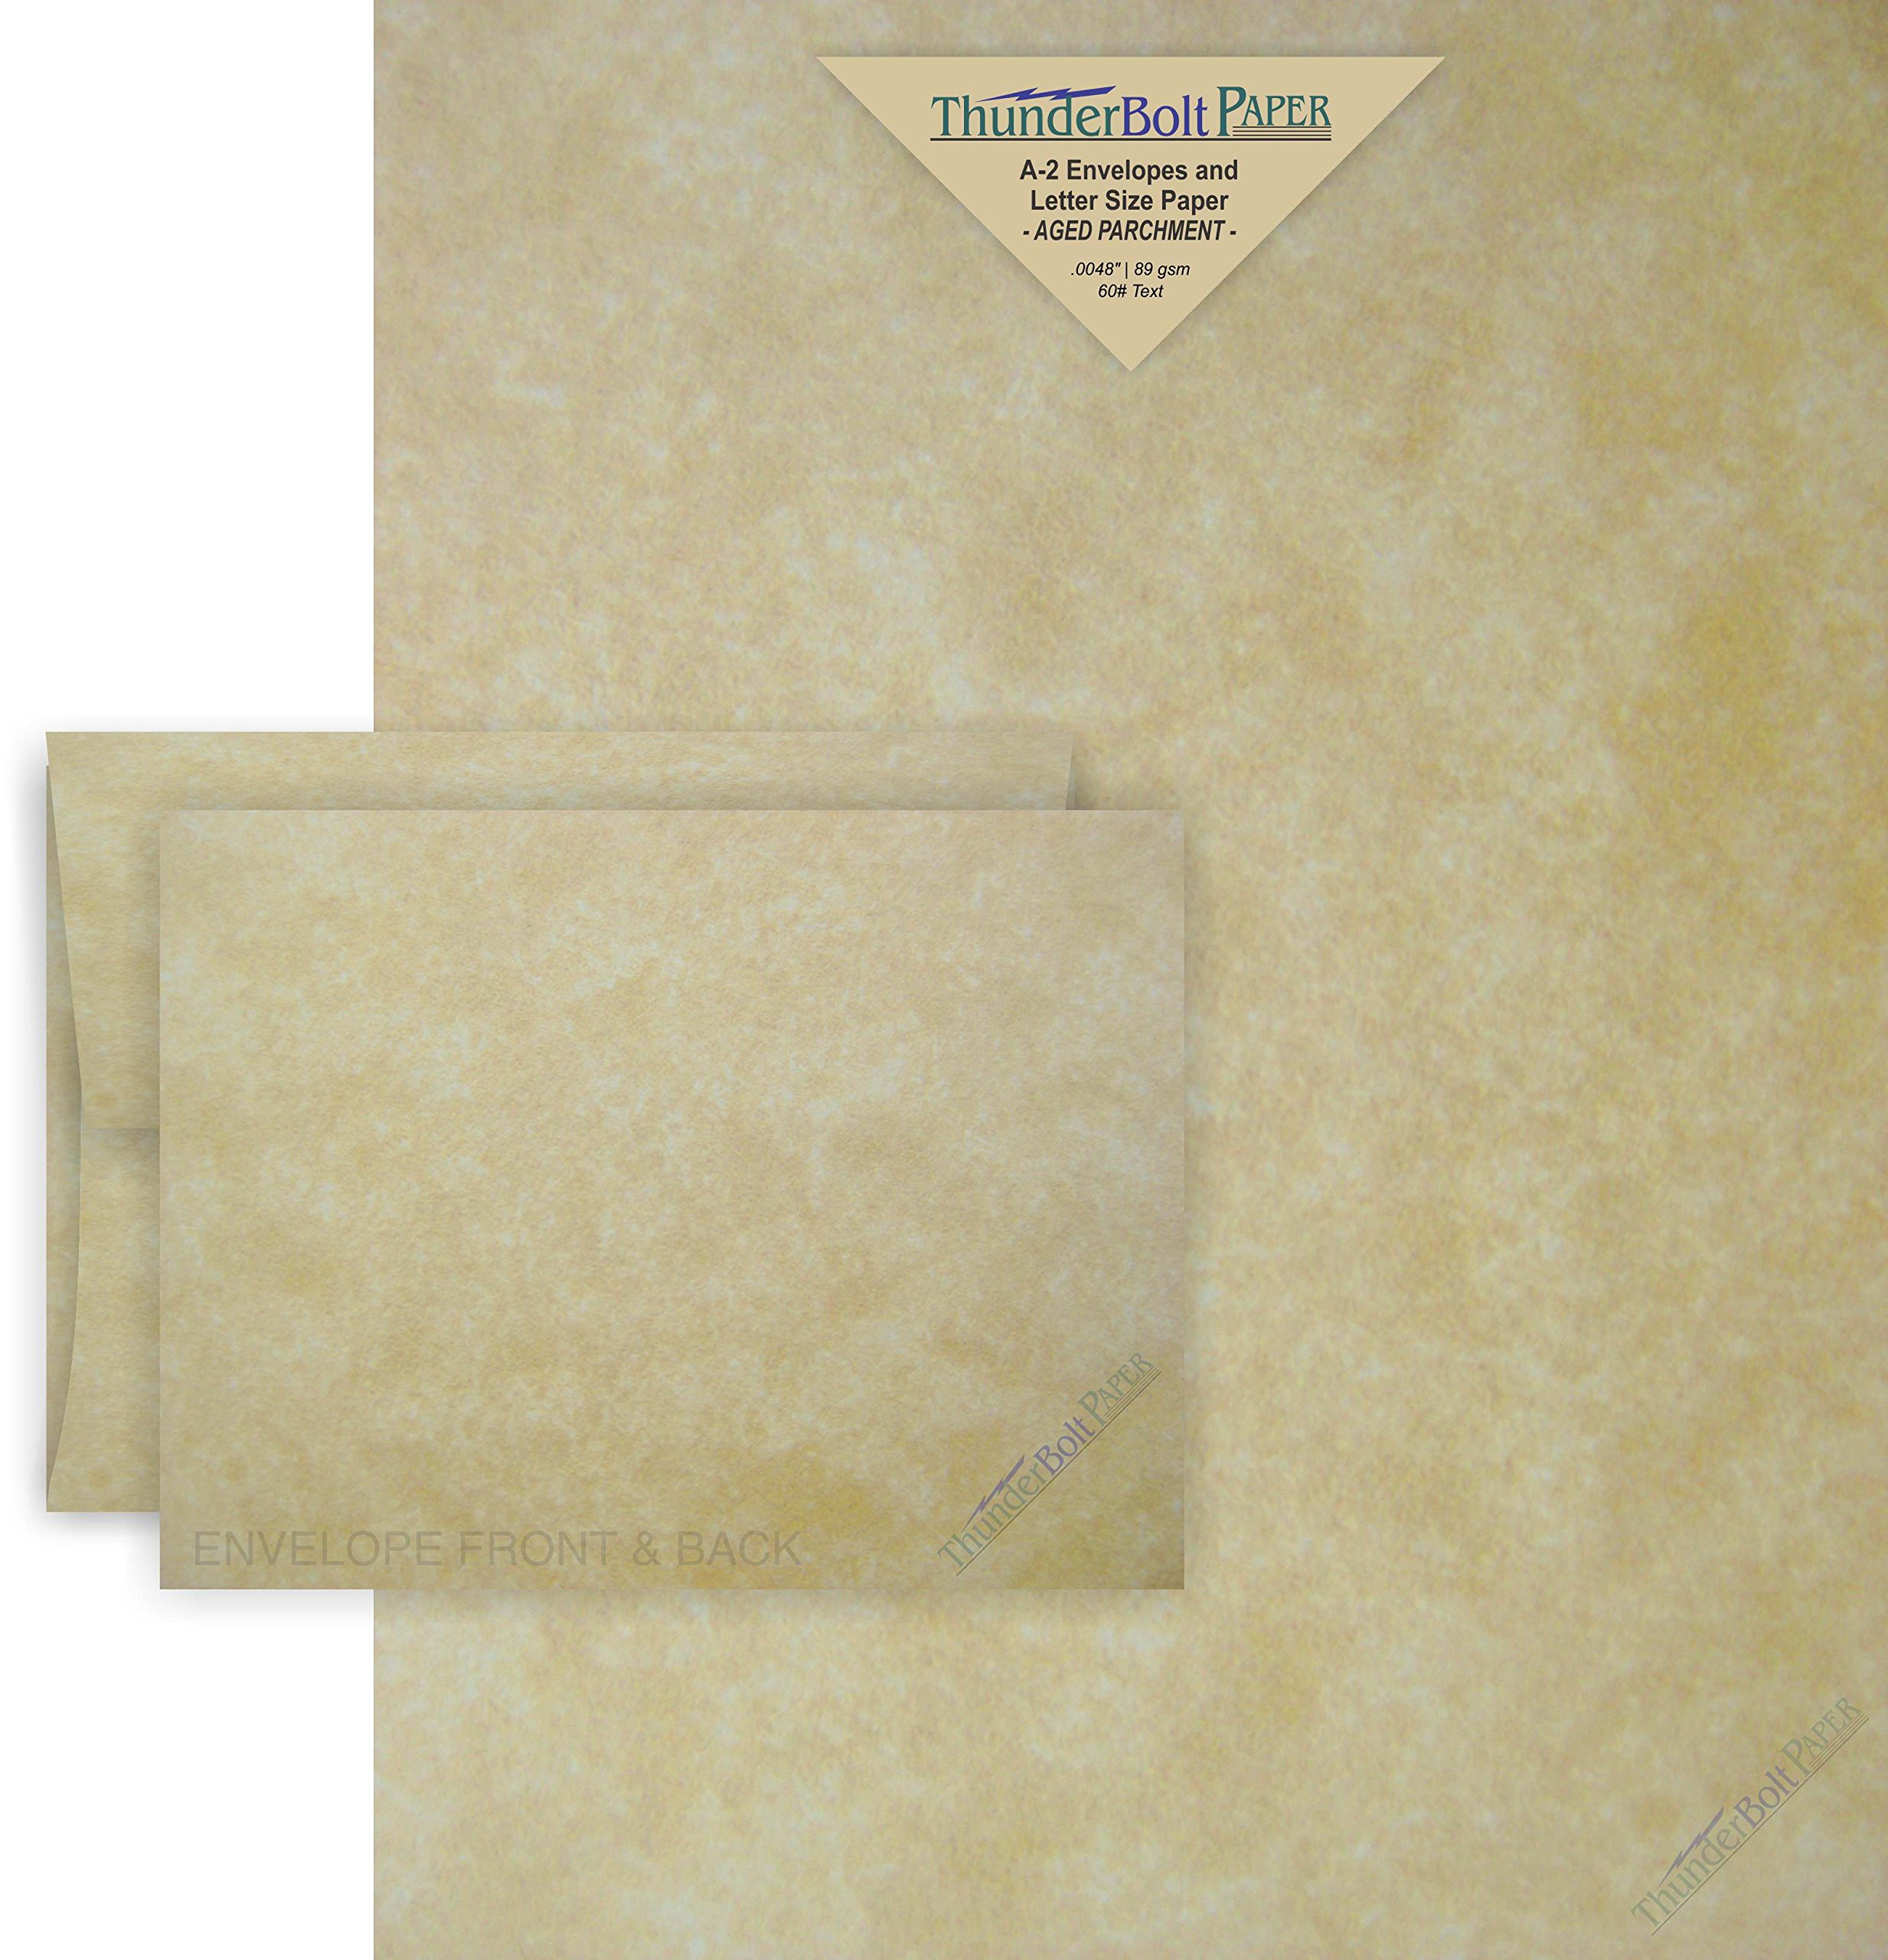 200 Old Age Parchment 65lb Cover Paper Sheets 4 X 6 Inches Cardstock Weight Colored Sheets 4 X 6 Printable Parchment Semblance by The Pulp Process Photo|Card|Frame Size 4X6 Inches